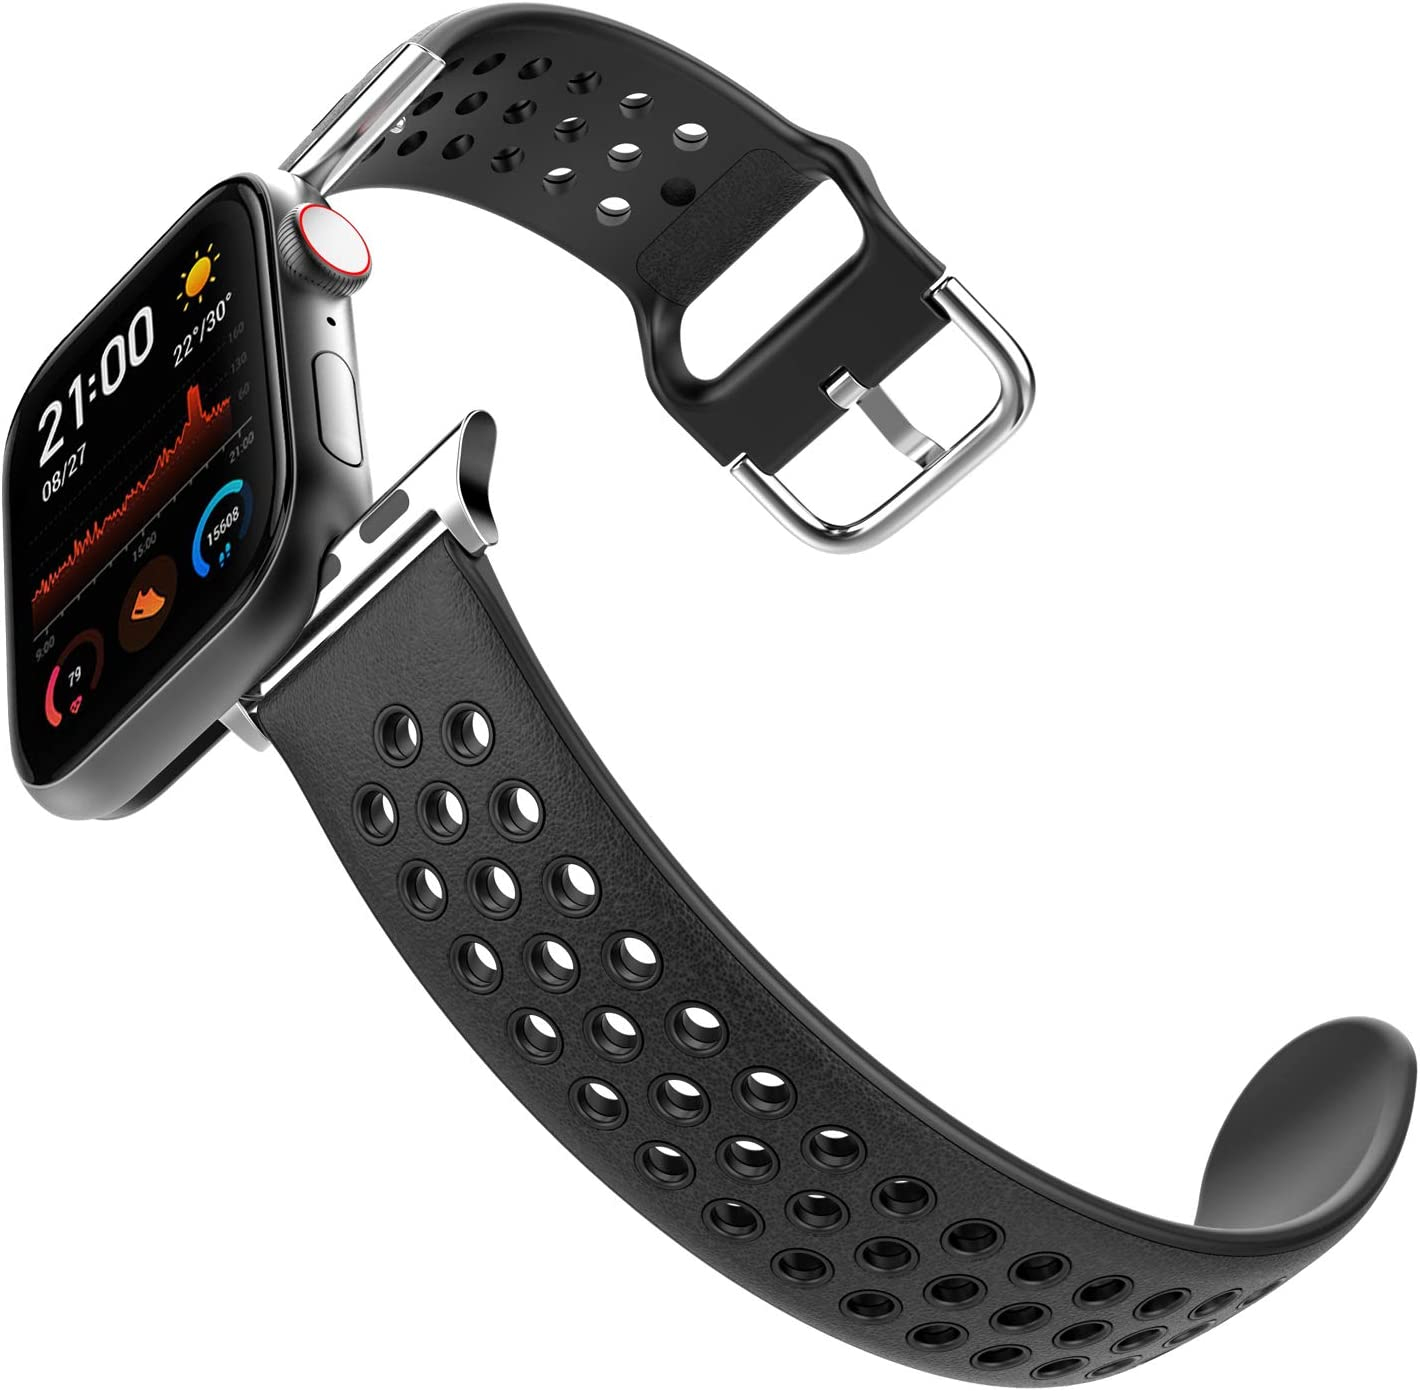 HALLEAST Compatible Apple Watch Band 42mm 44mm for Men, Leather Skin Soft TPU Waterproof Sport iWatch Bands for Series 1/2/3/4/5/6, Classic Black